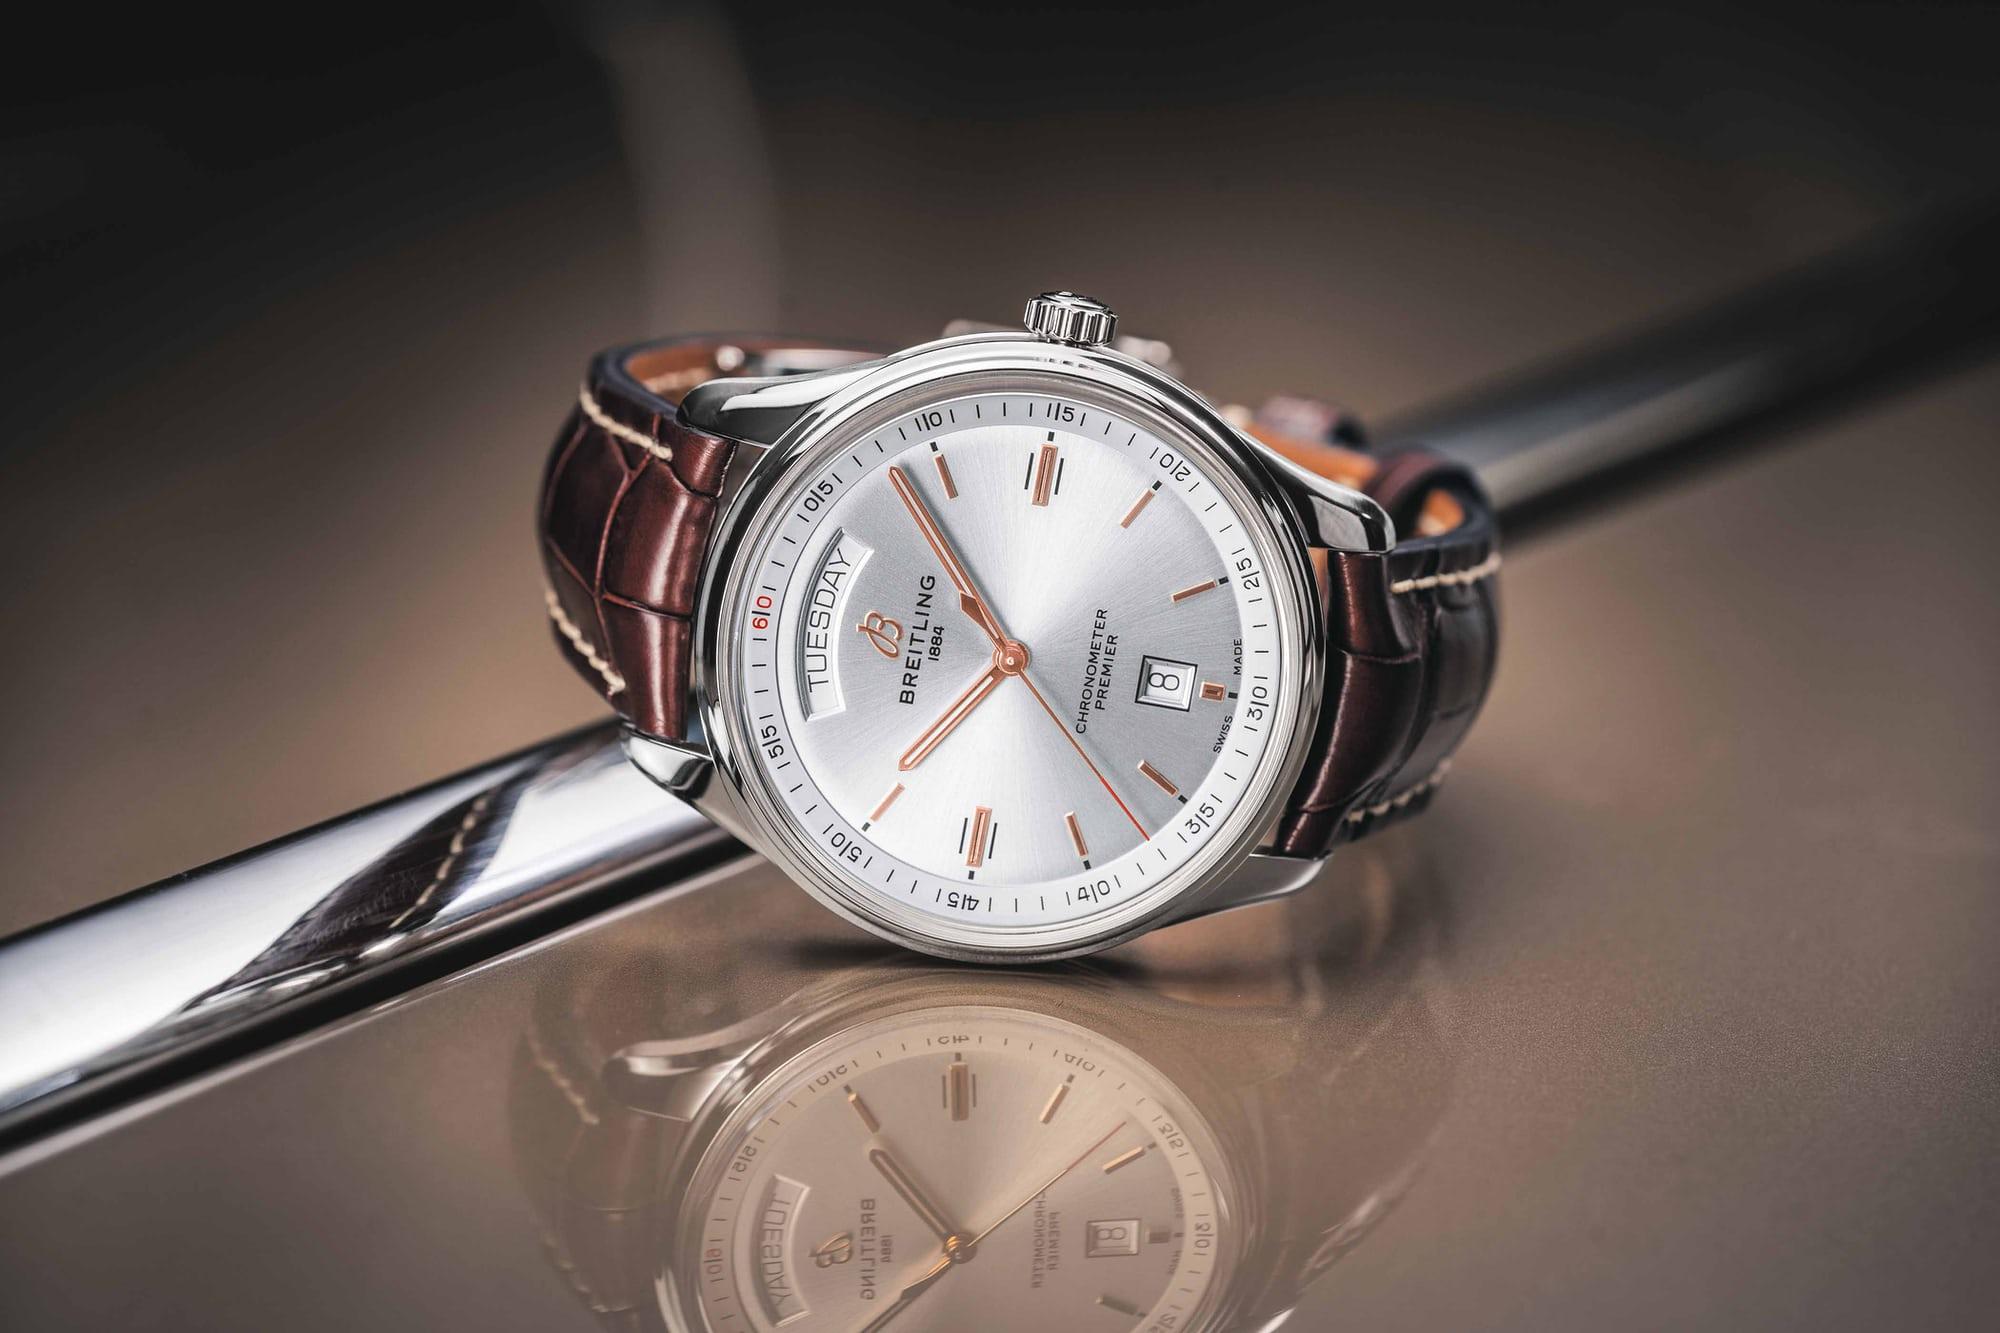 Introducing: The New Breitling Premier Collection (Live Pics & Pricing) 01 Premier Automatic Day  Date 40 with silver dial and brown alligator leather strap